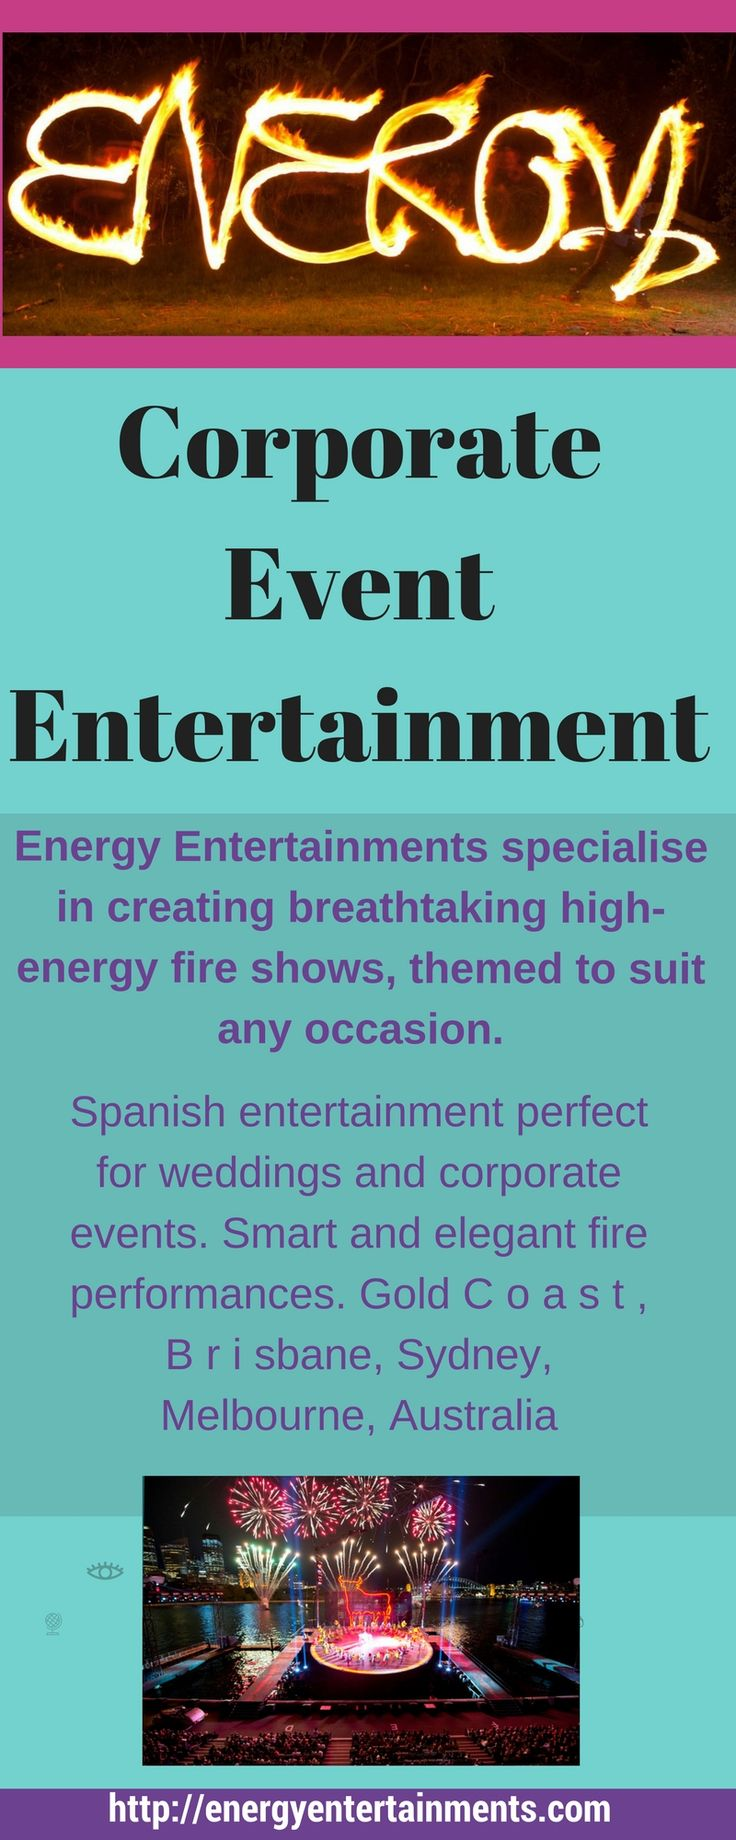 We love pushing the boundaries at Energy Entertainments and believe anything is possible with the correct planning and safety precautions.